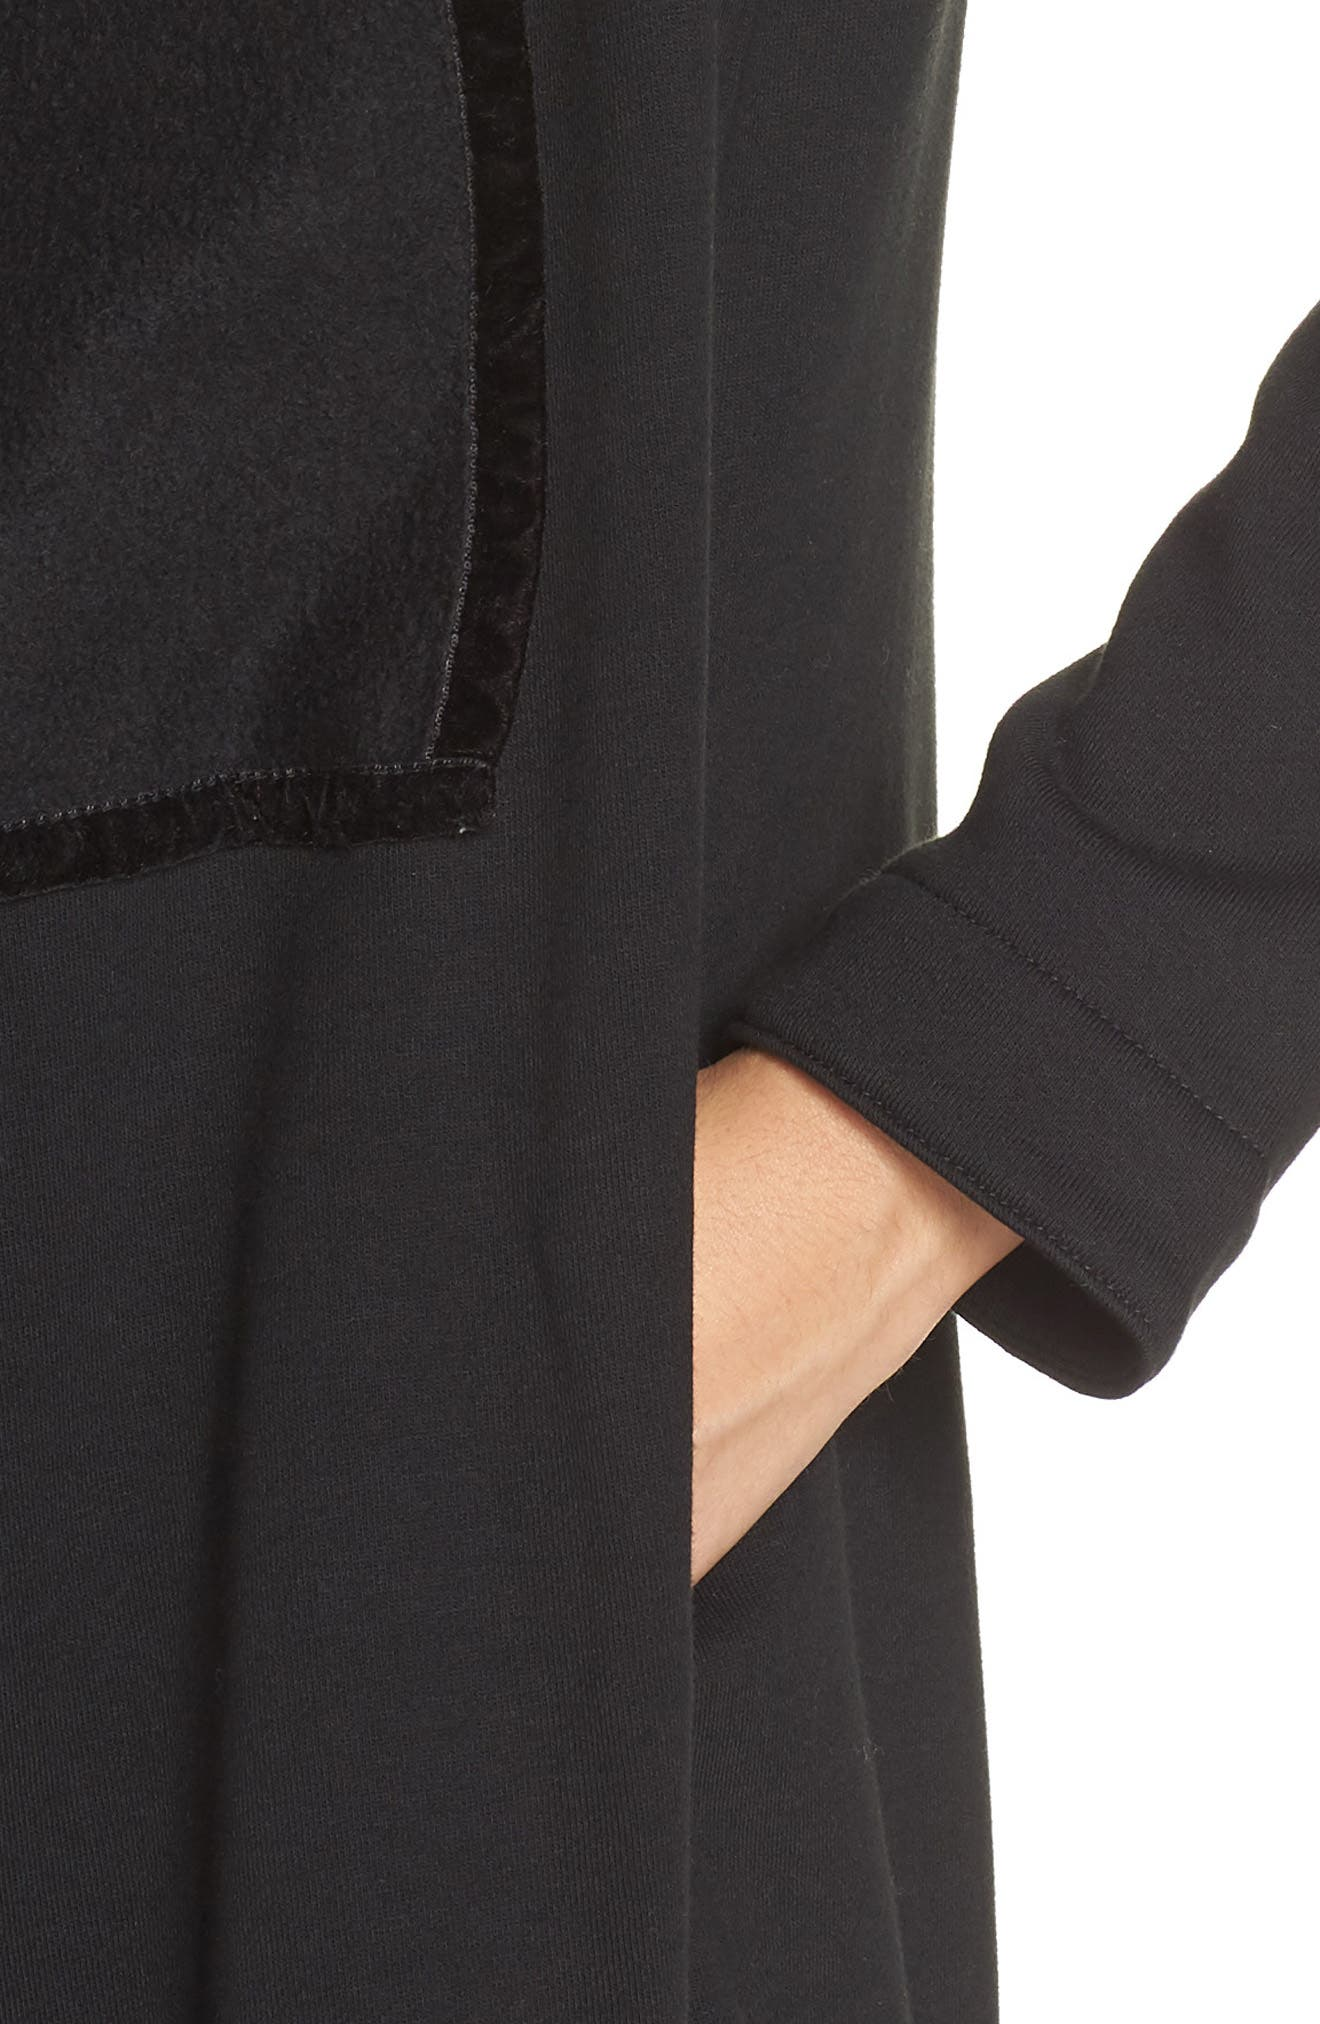 Janni Fleece Cardigan,                             Alternate thumbnail 4, color,                             BLACK